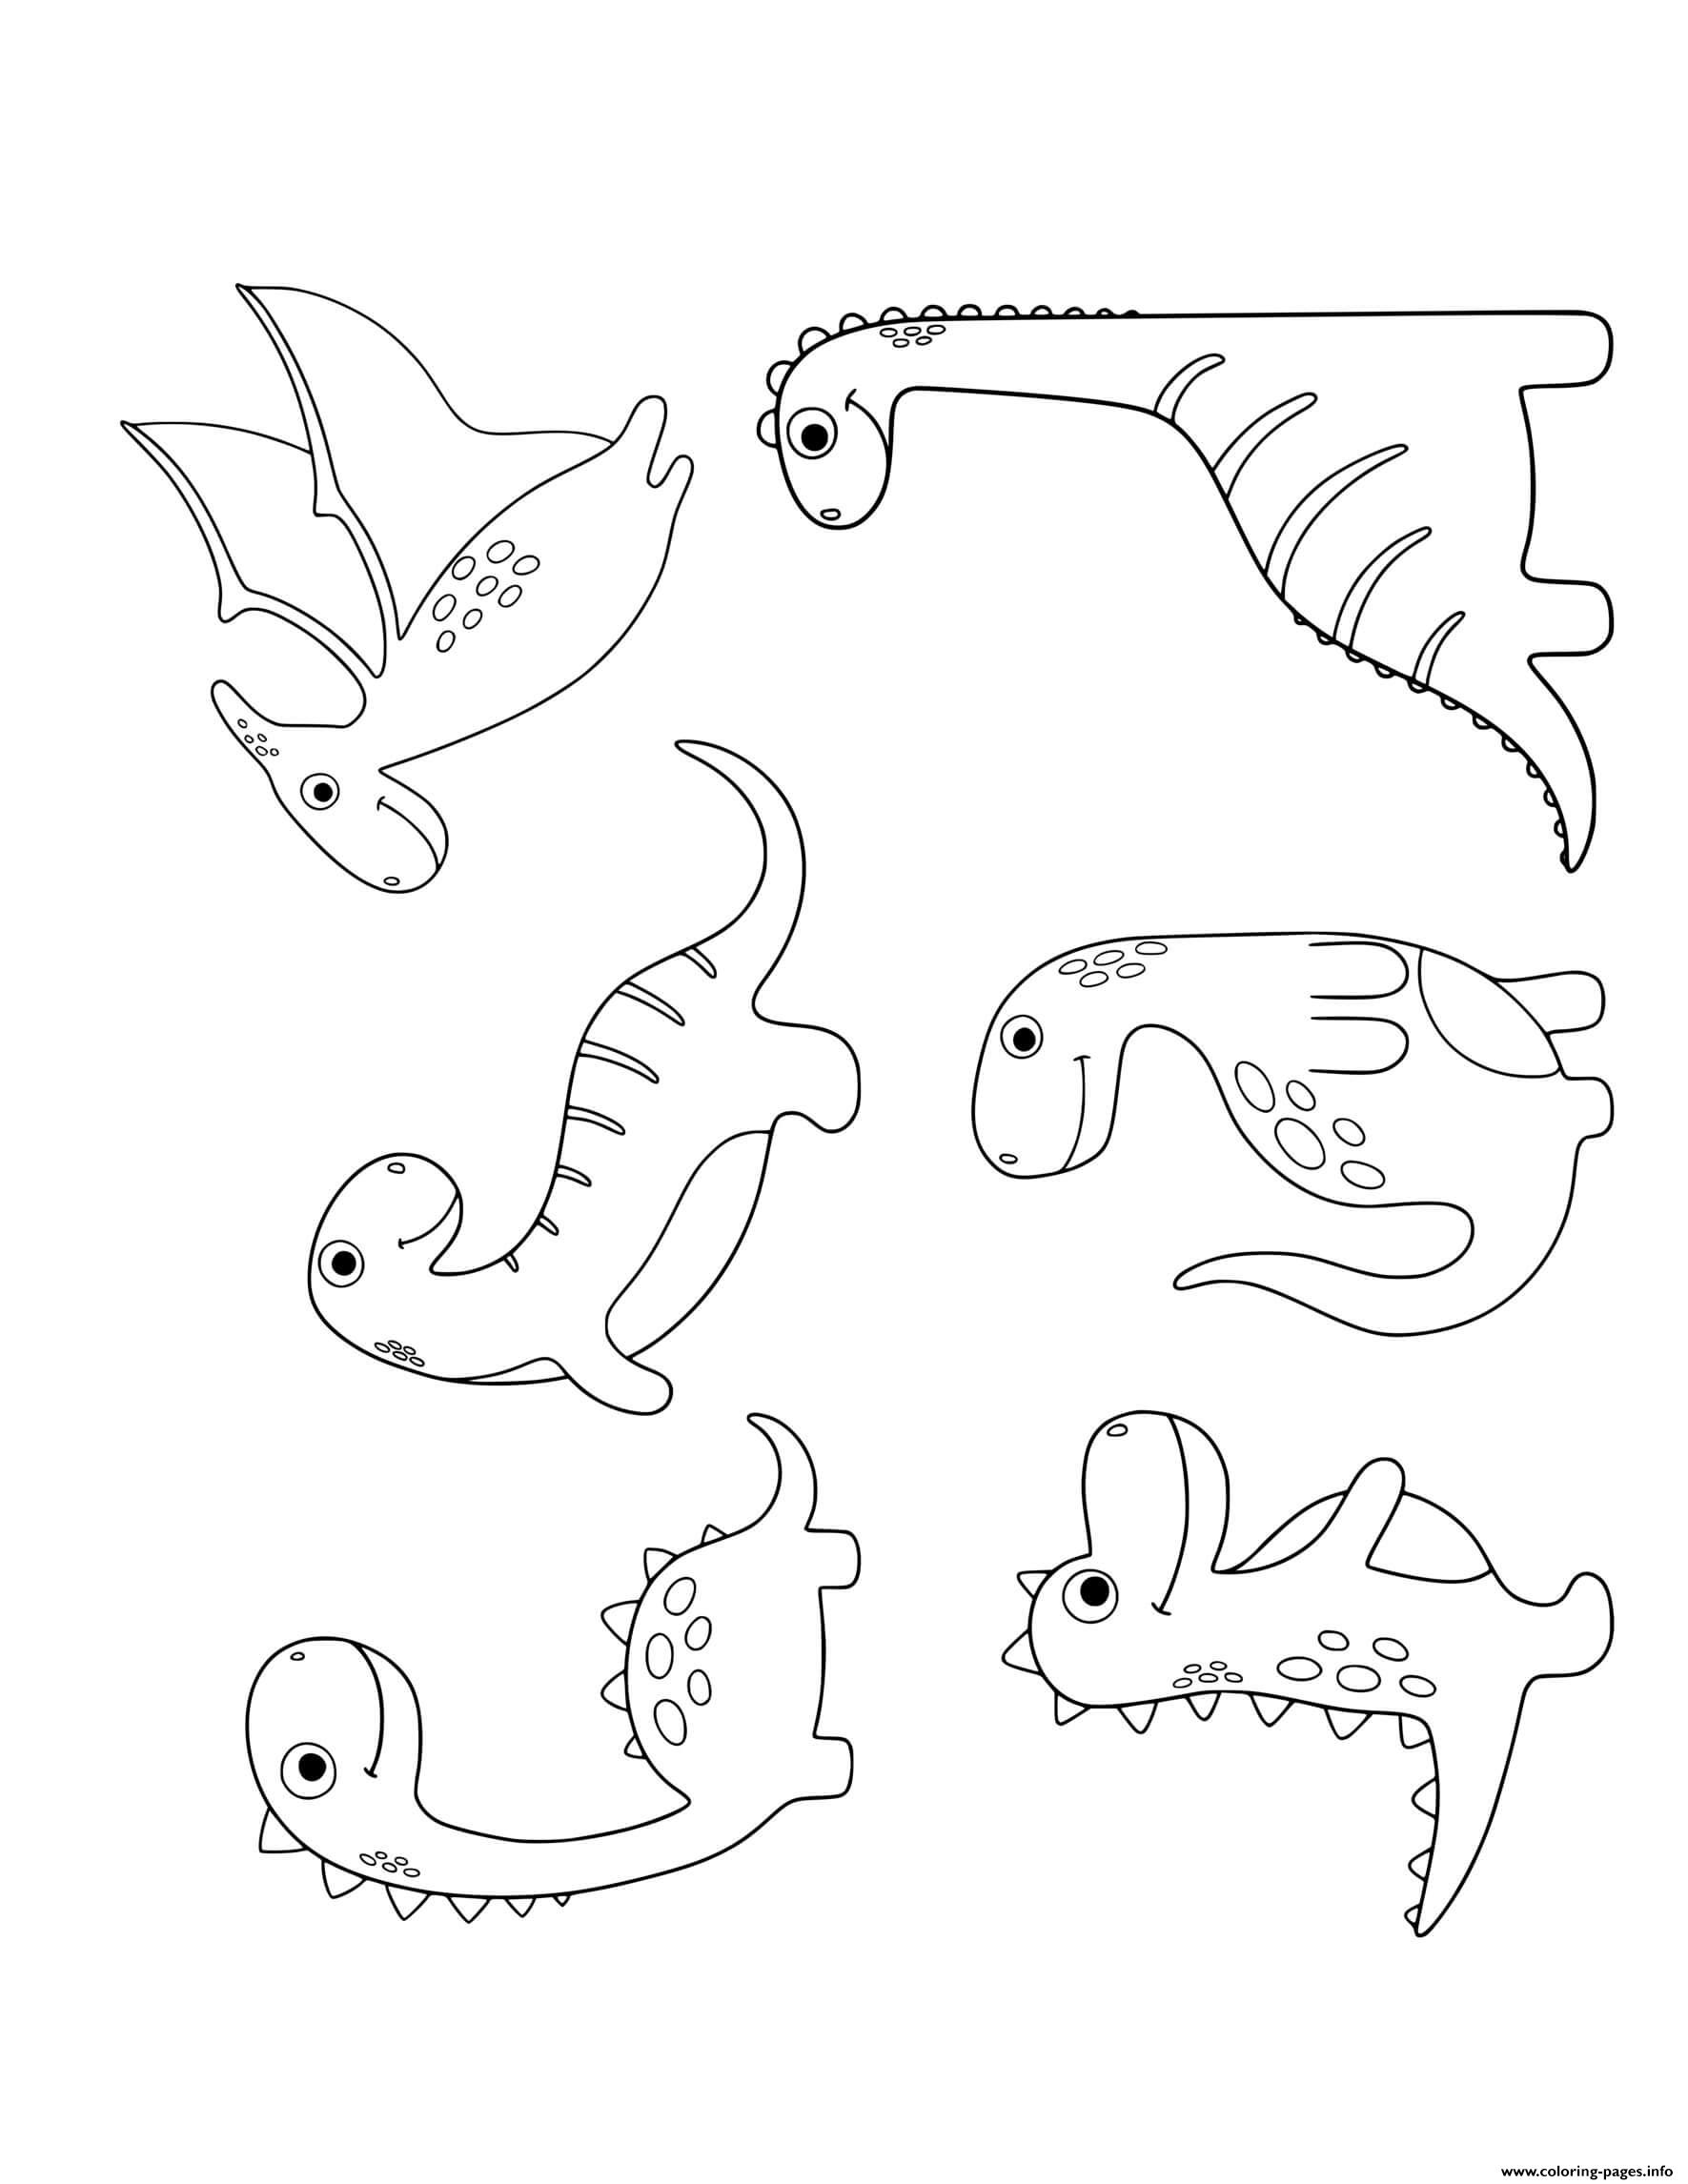 Dinosaur 6 Cute Dinos For Preschoolers 4 Coloring Pages ...